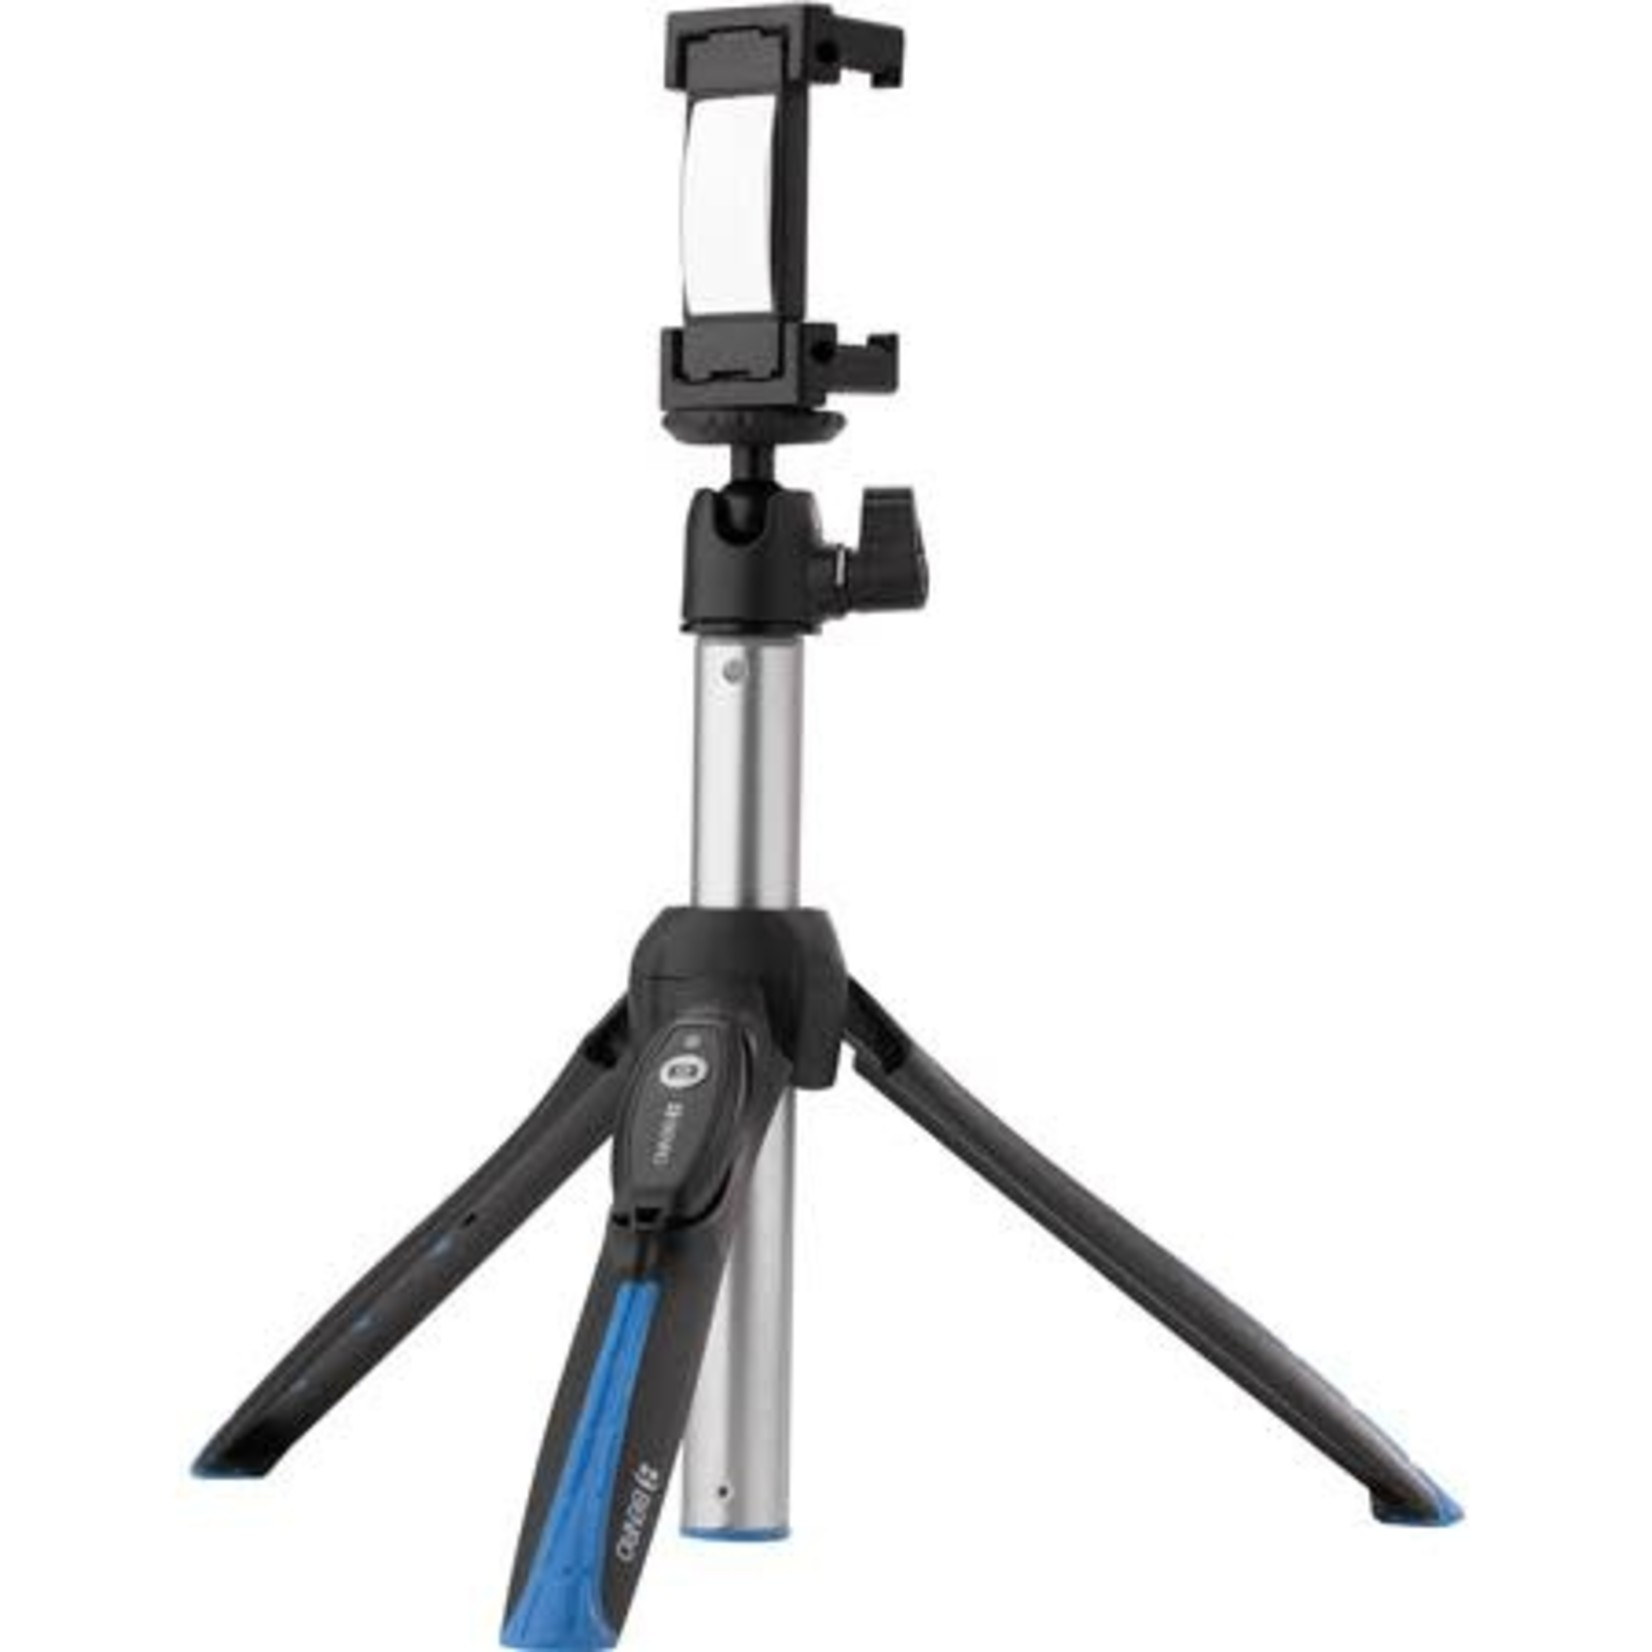 Benro Benro BK15 Mini Tripod and Selfie Stick with Bluetooth Remote for Smartphones, Black